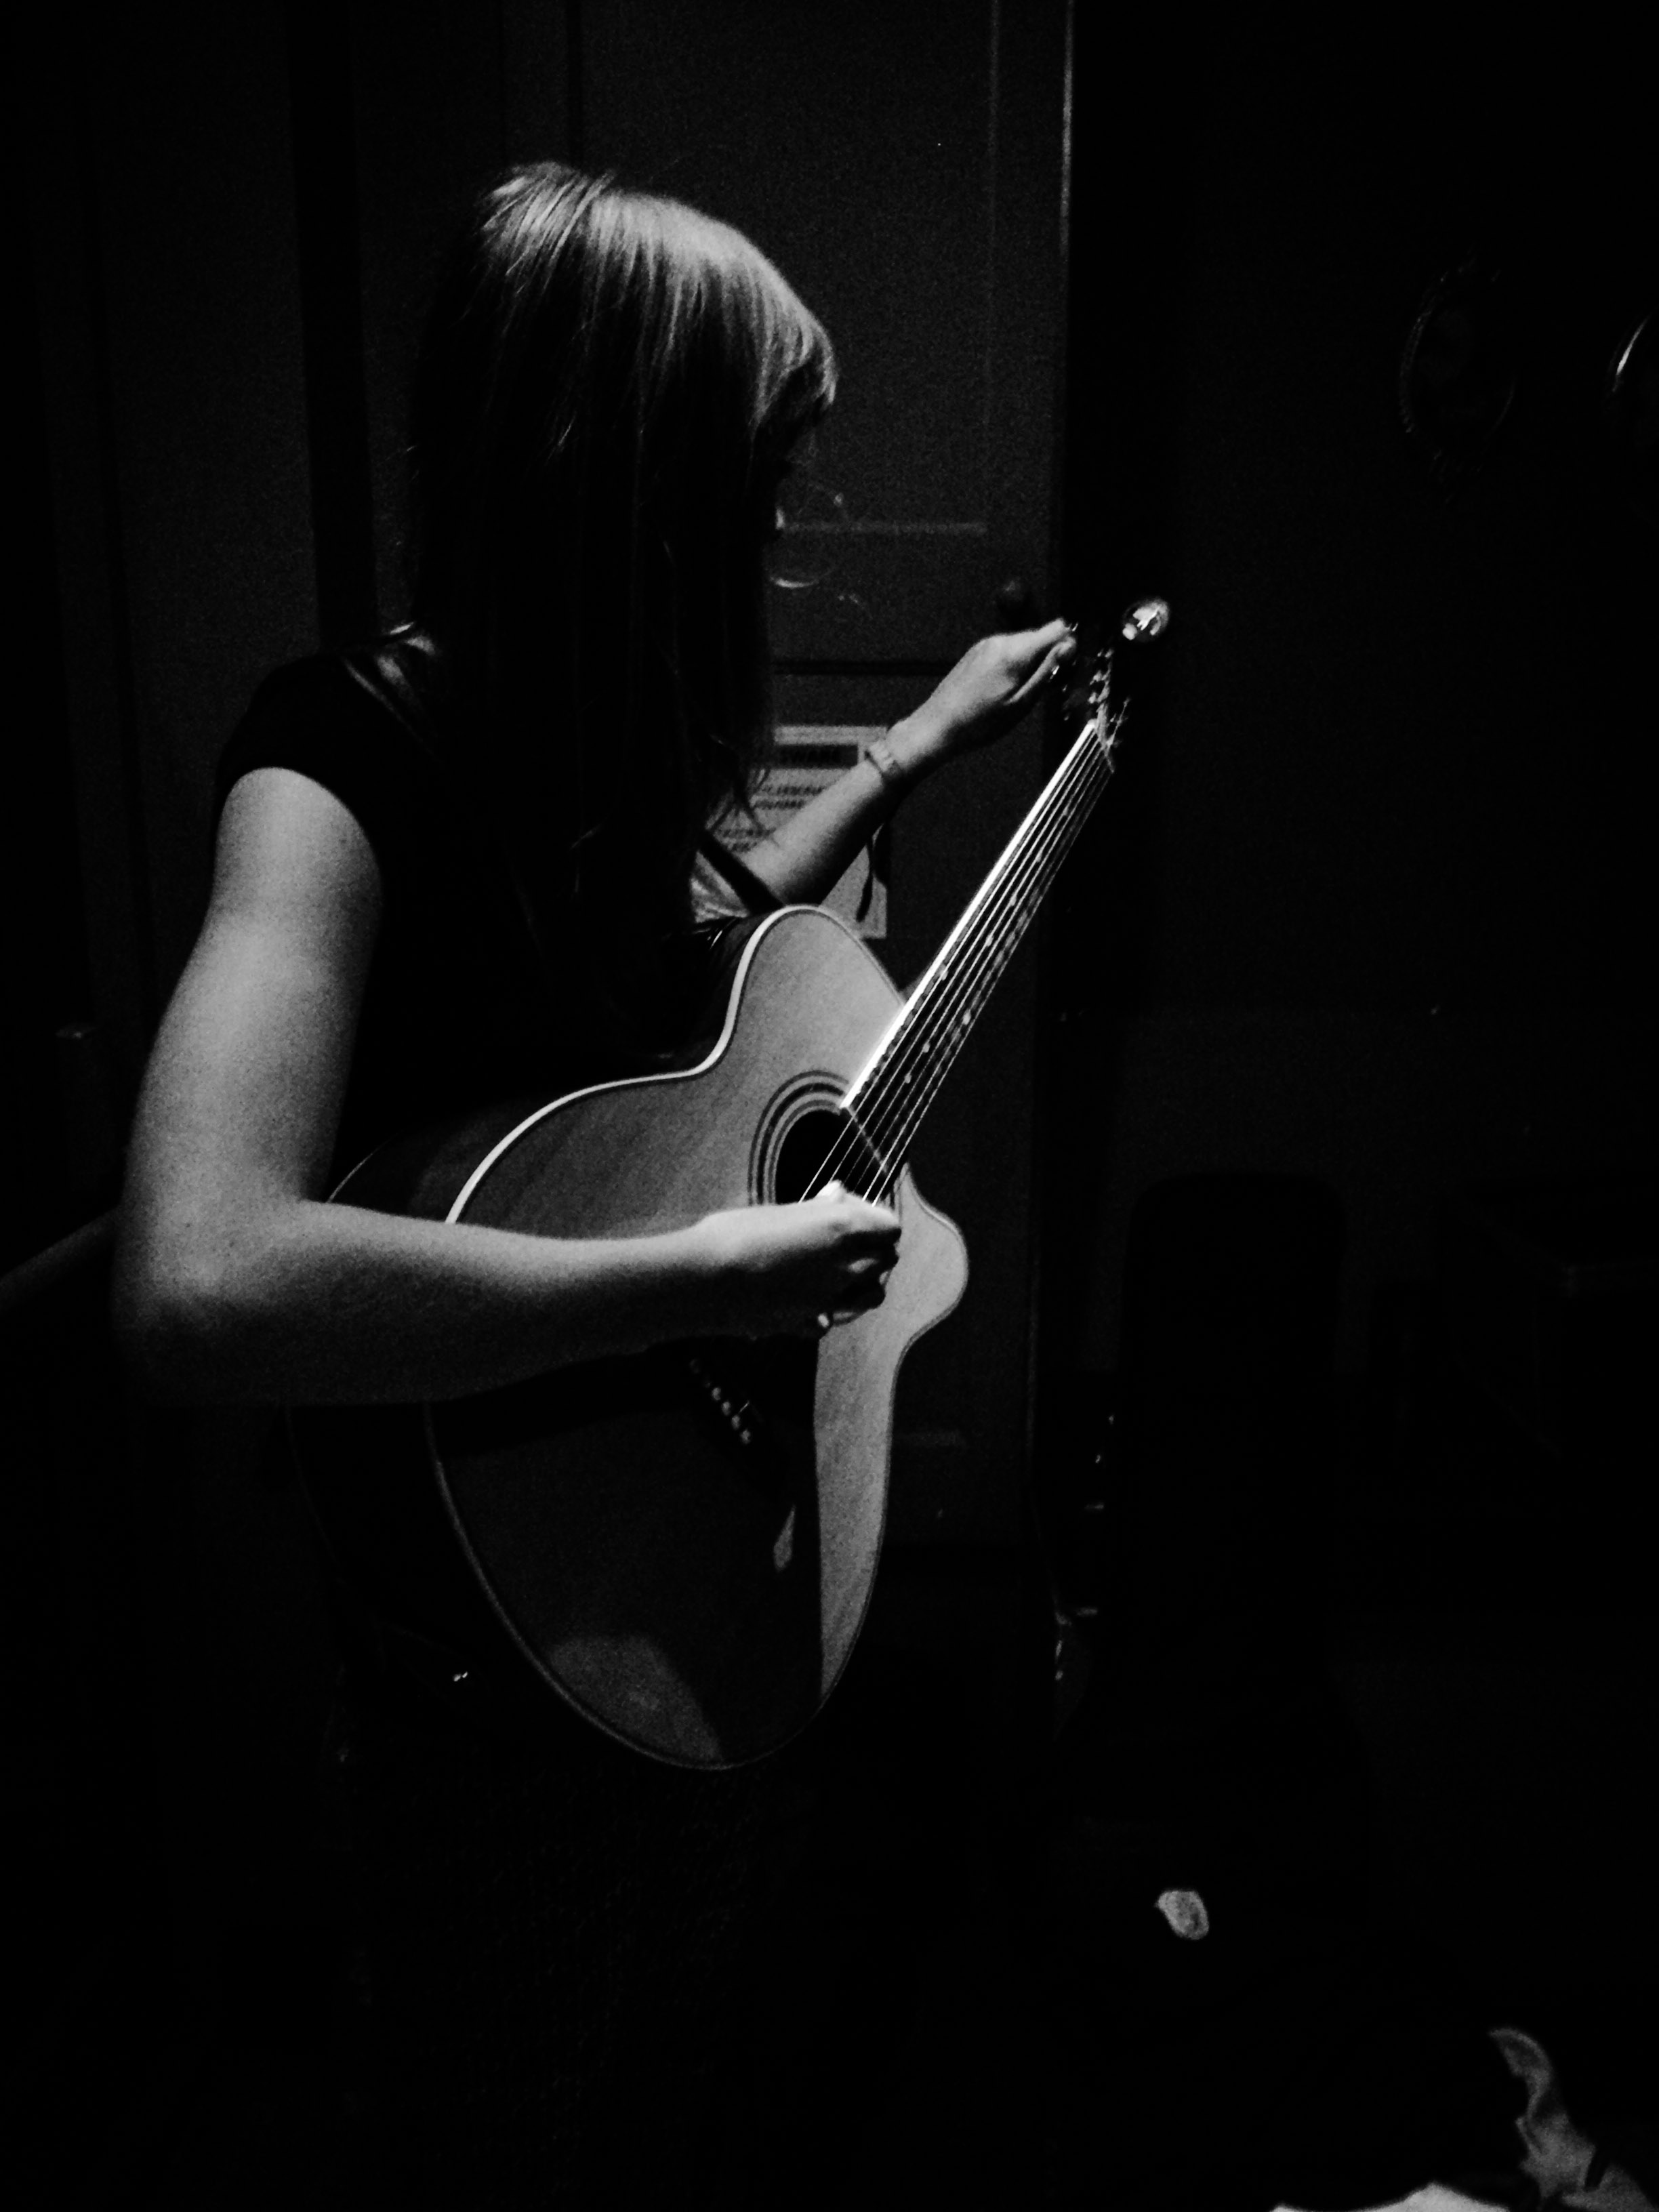 Backstage tuning up at The LP